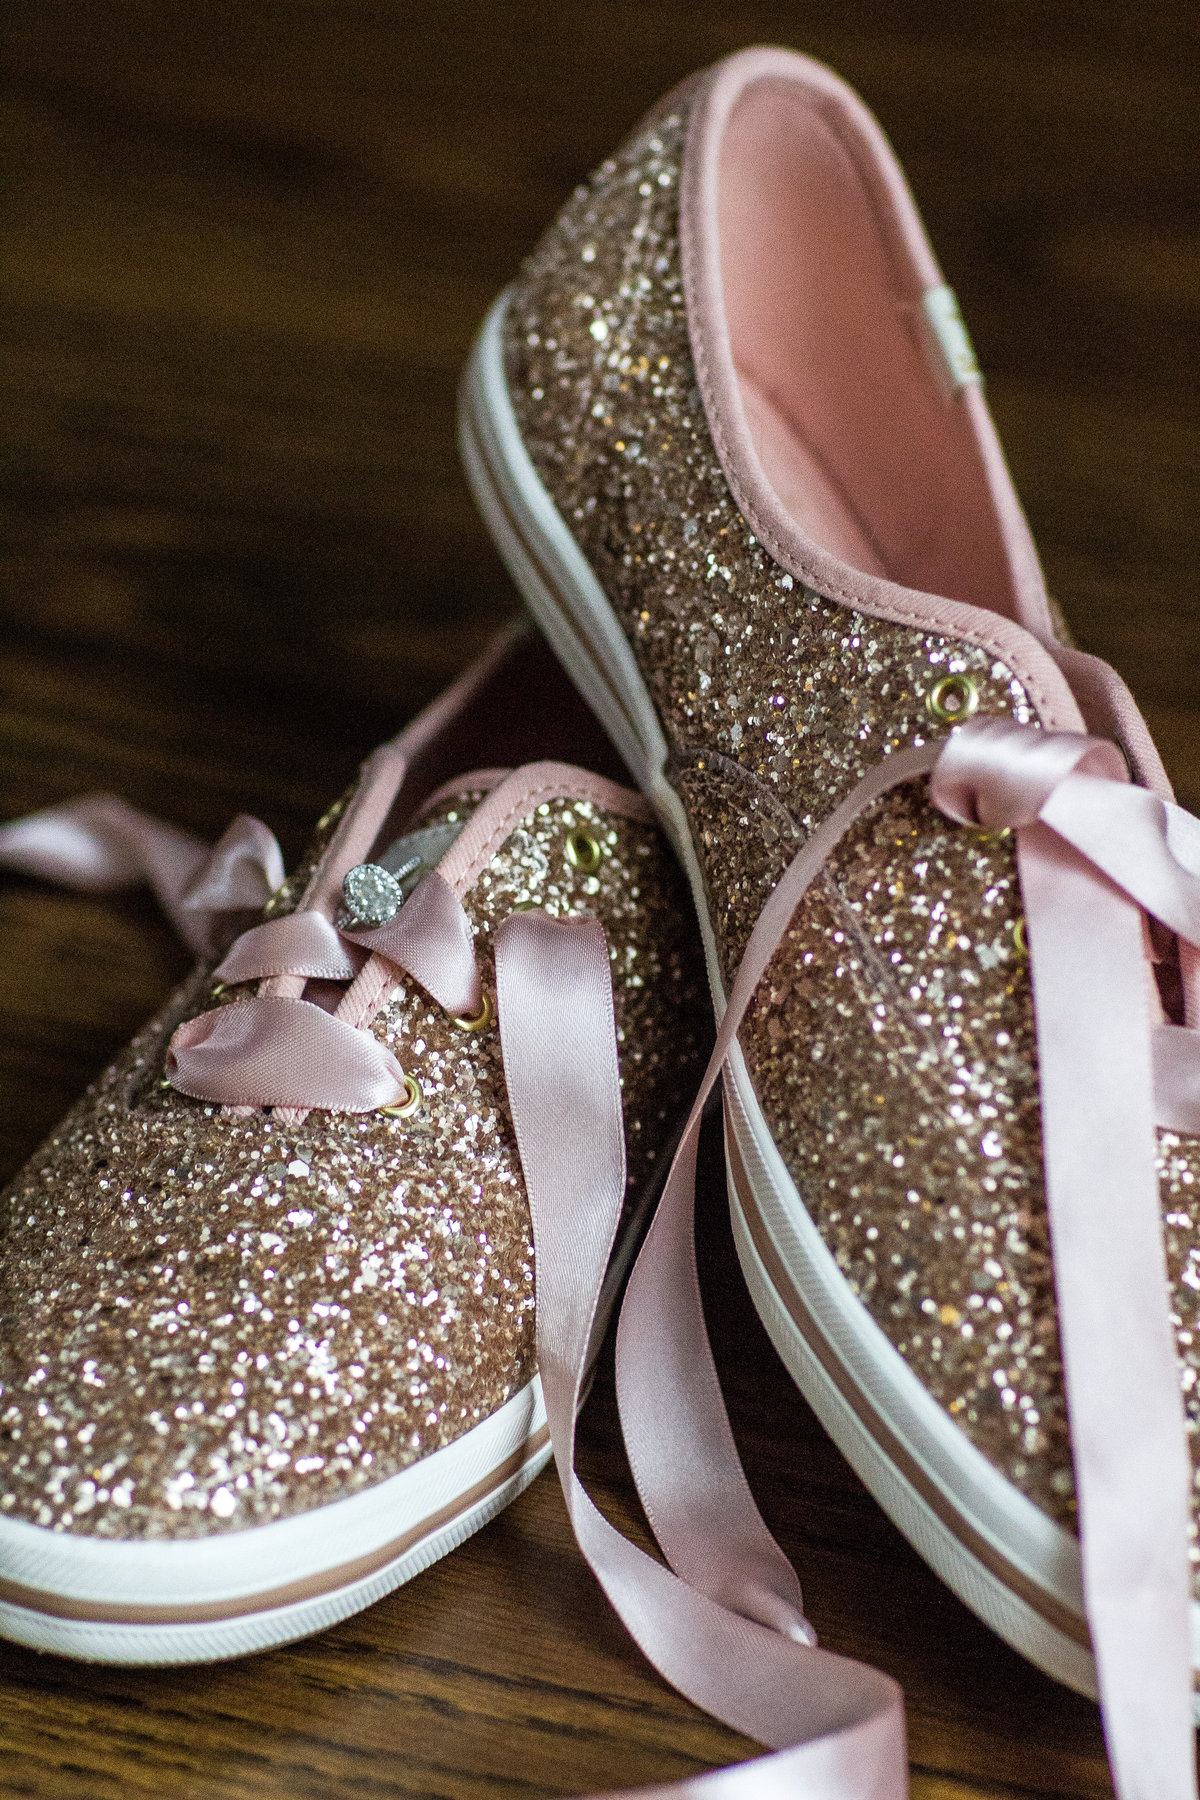 Jackson Hole, Wyoming, Teton Valley, Driggs, Idaho, wedding photographer, kate spade pink glitter shoes, engagement ring, wedding detail session, photographer